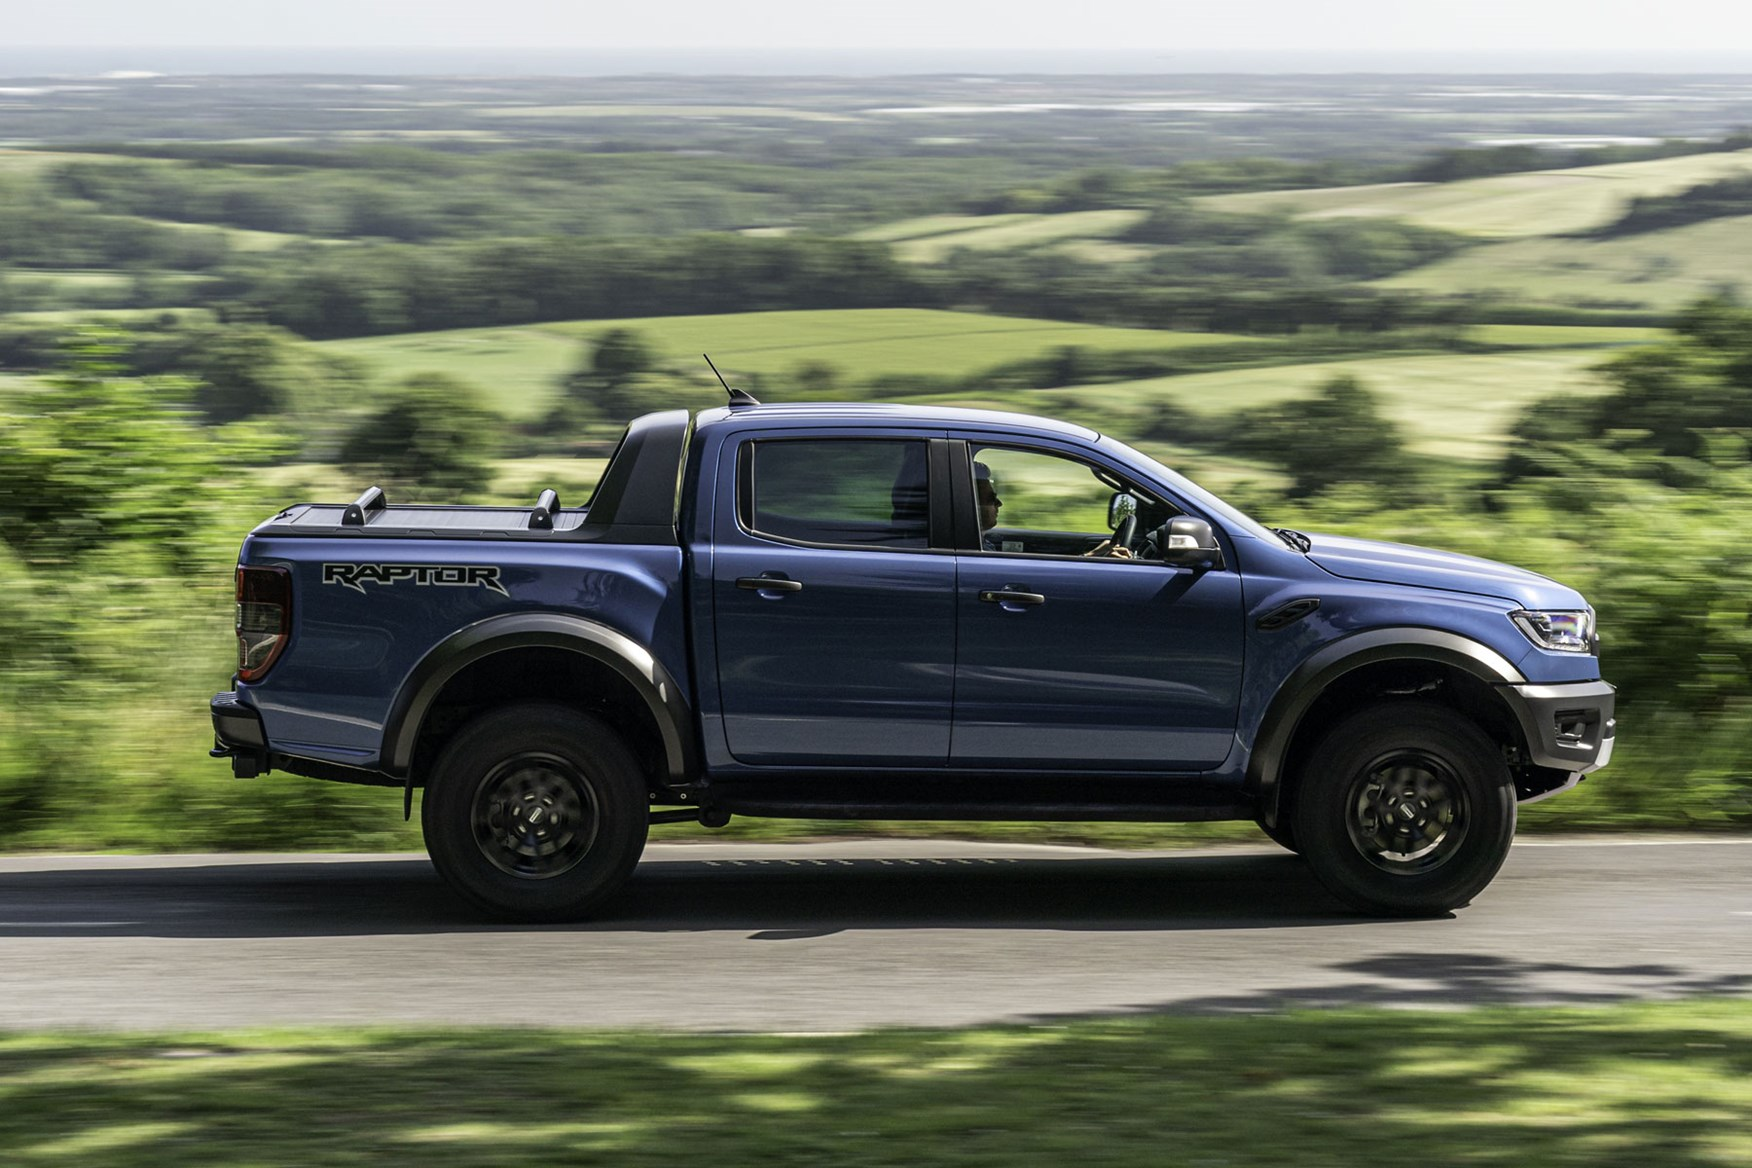 Ford Ranger Raptor review - side view, blue, driving on road, 2019